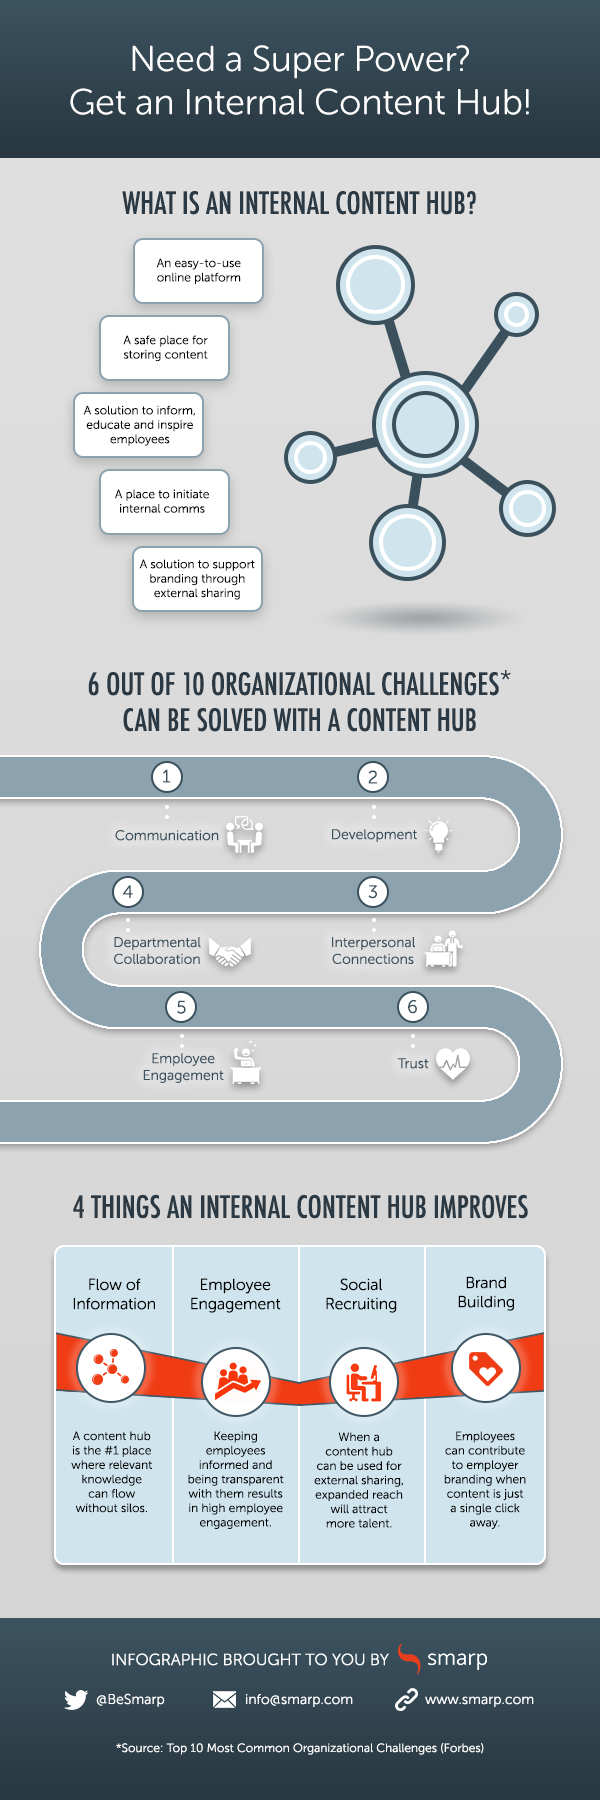 internal-content.hub-infographic-by-smarp